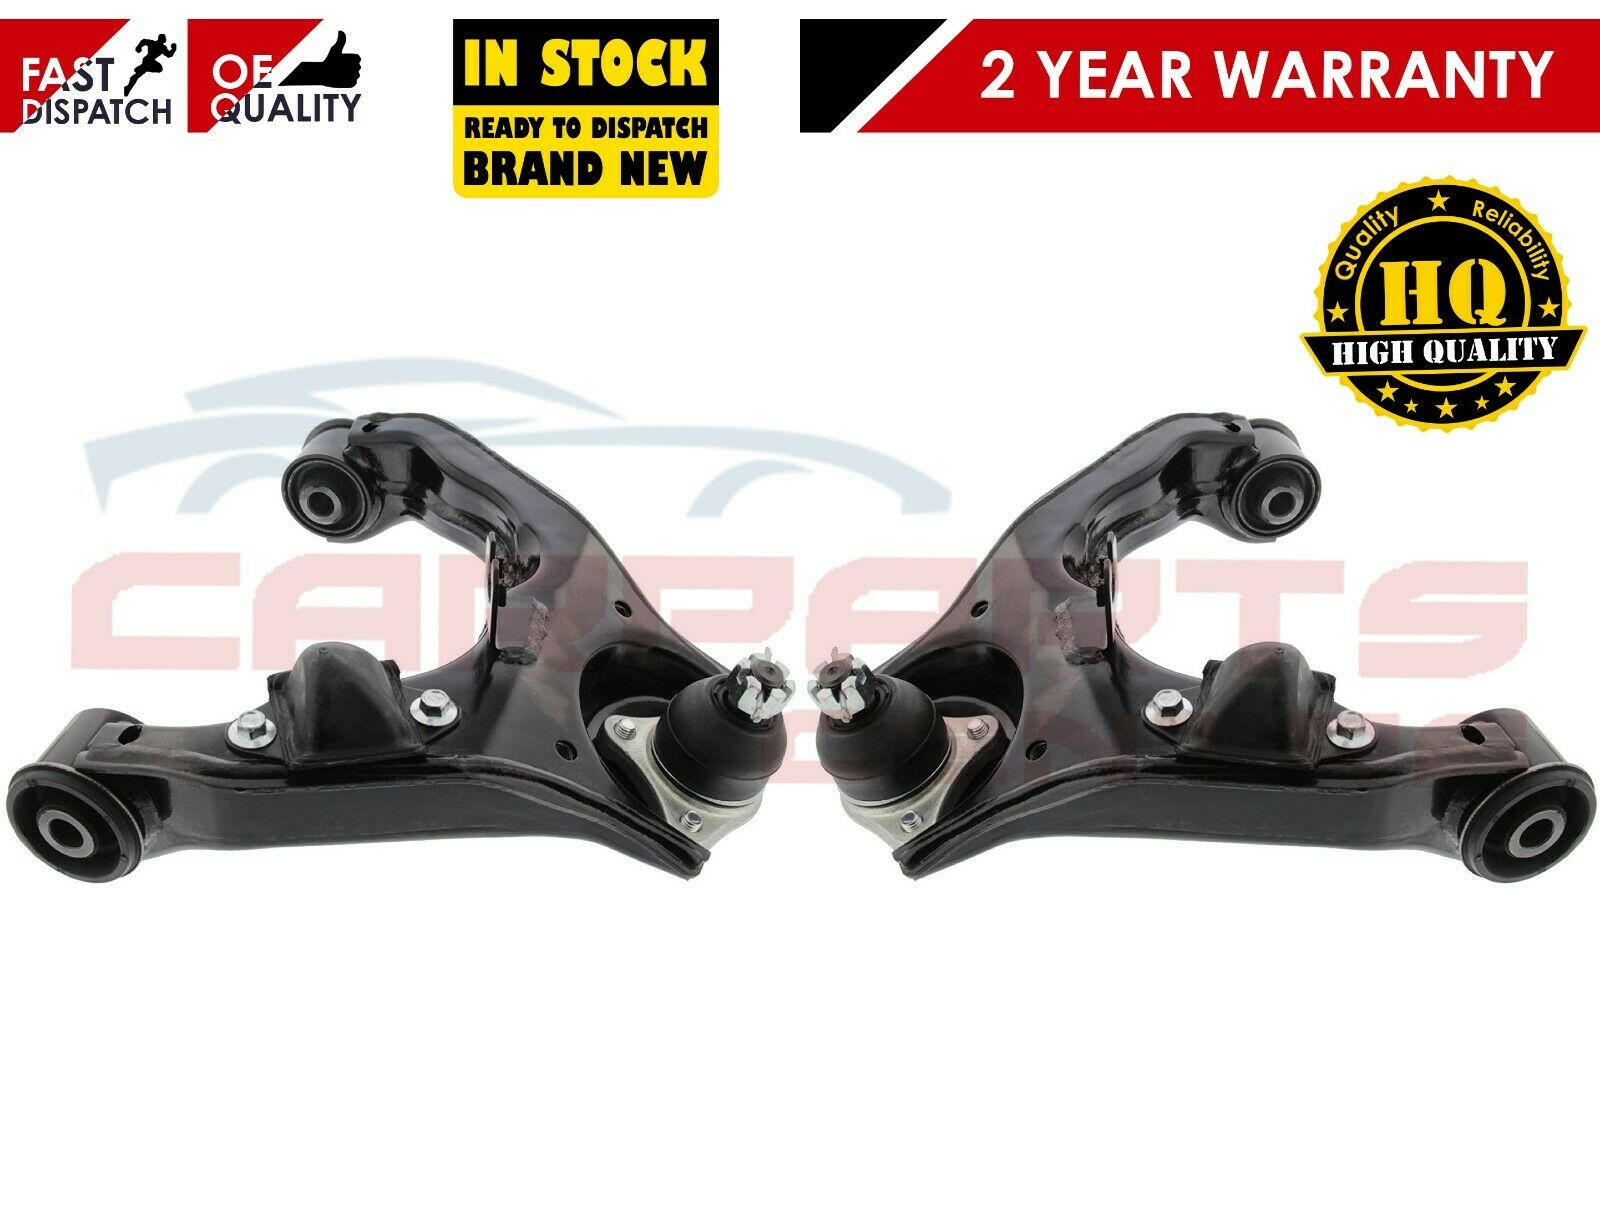 LAND ROVER DISCOVERY 3 NEW FRONT UPPER SUSPENSION WISHBONE CONTROL ARMS PAIR